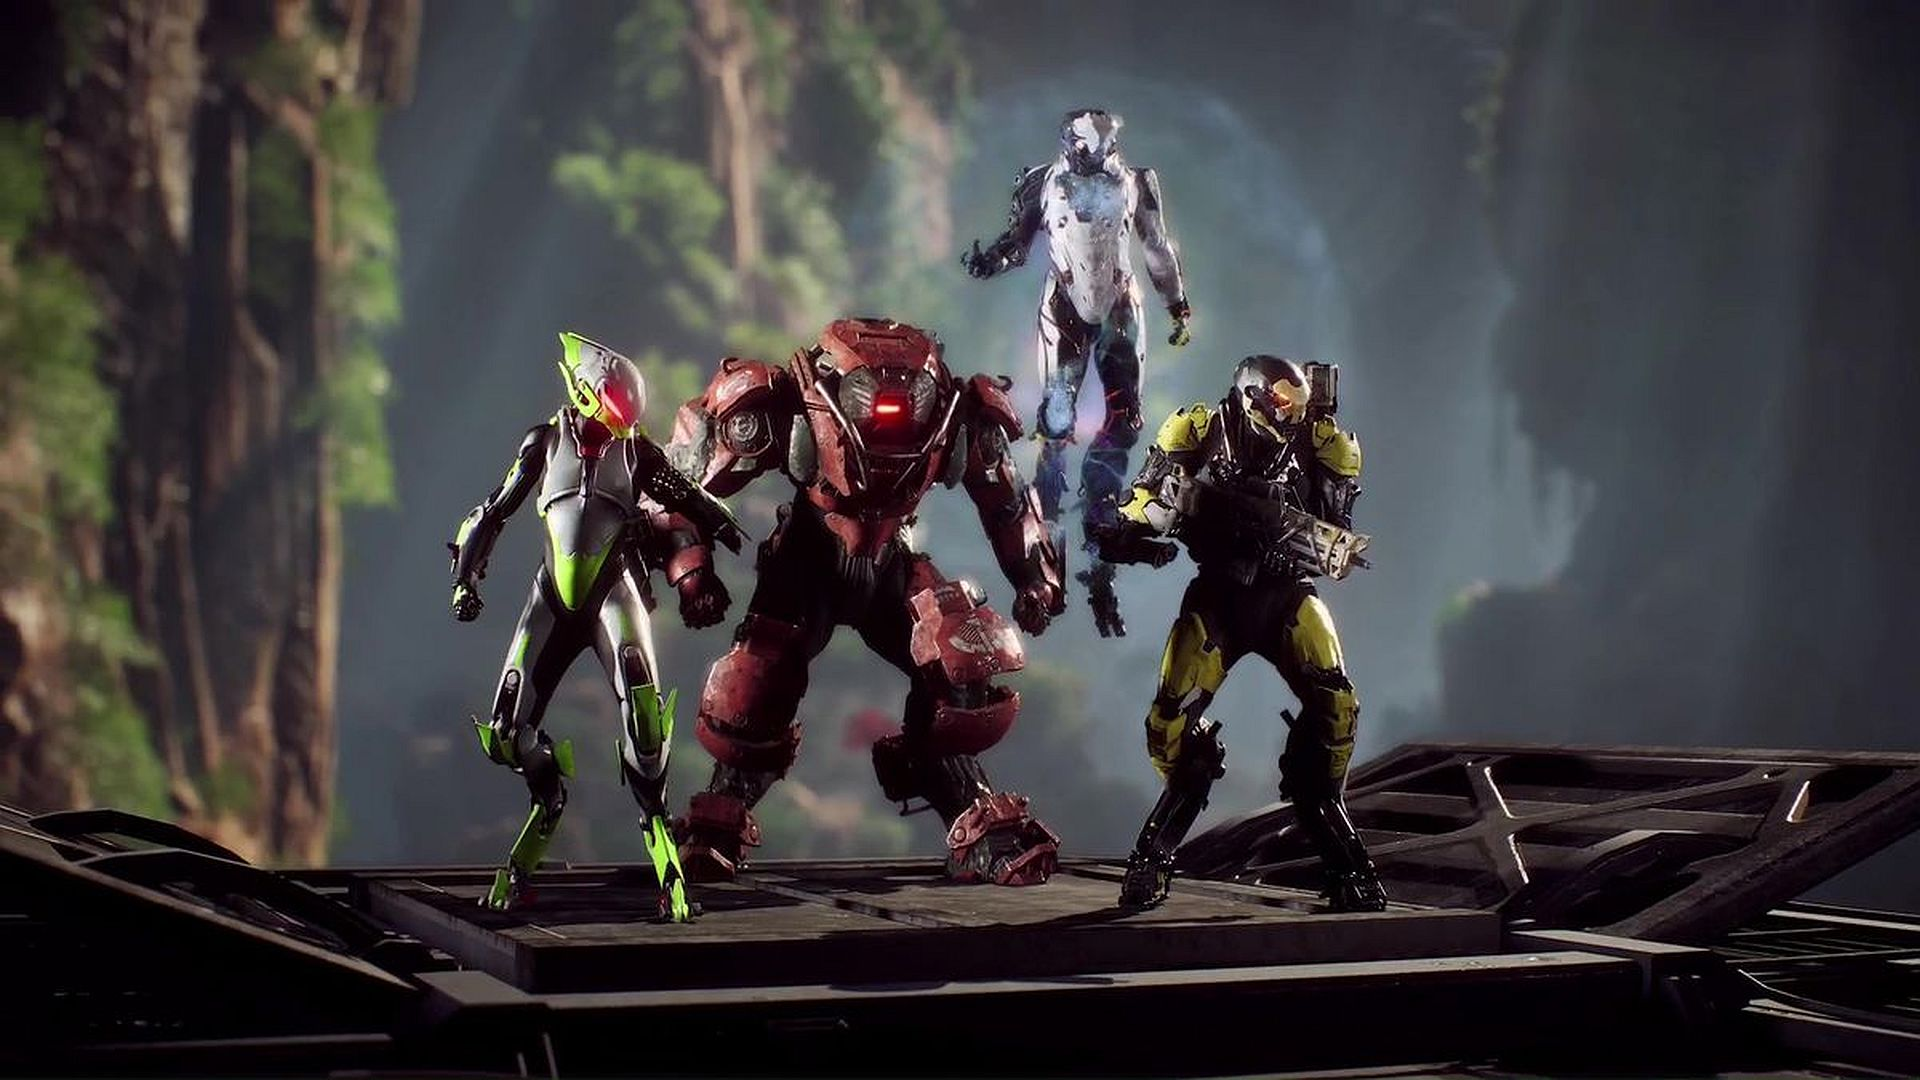 what the max level cap is in Anthem